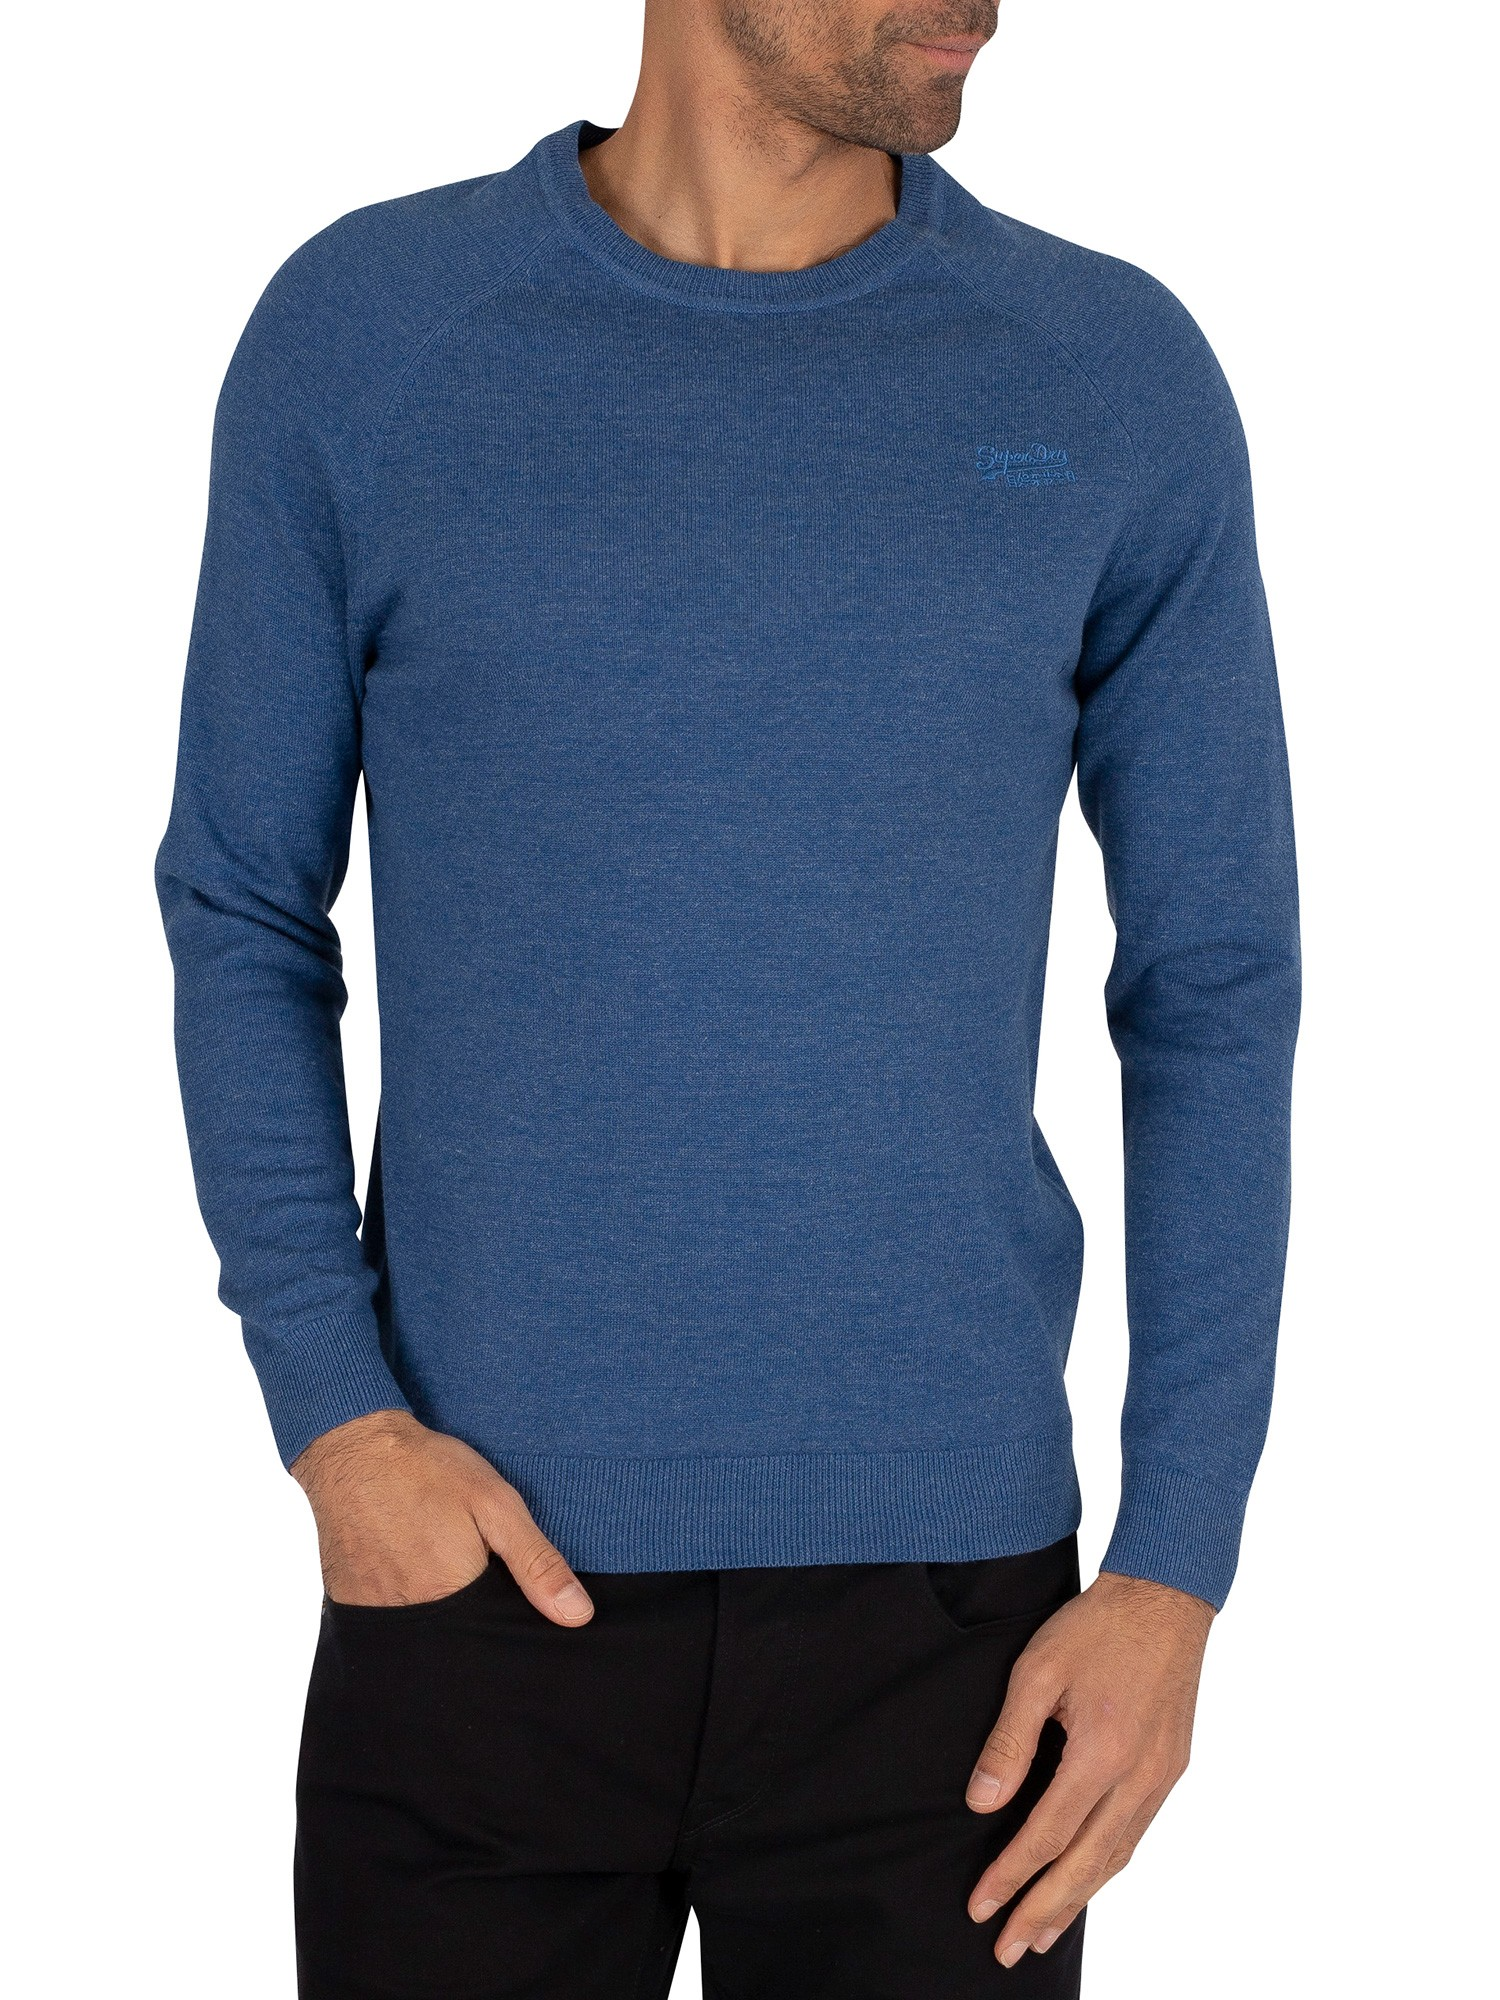 Superdry Orange Label Cotton Knit - Adriatic Blue Grindle